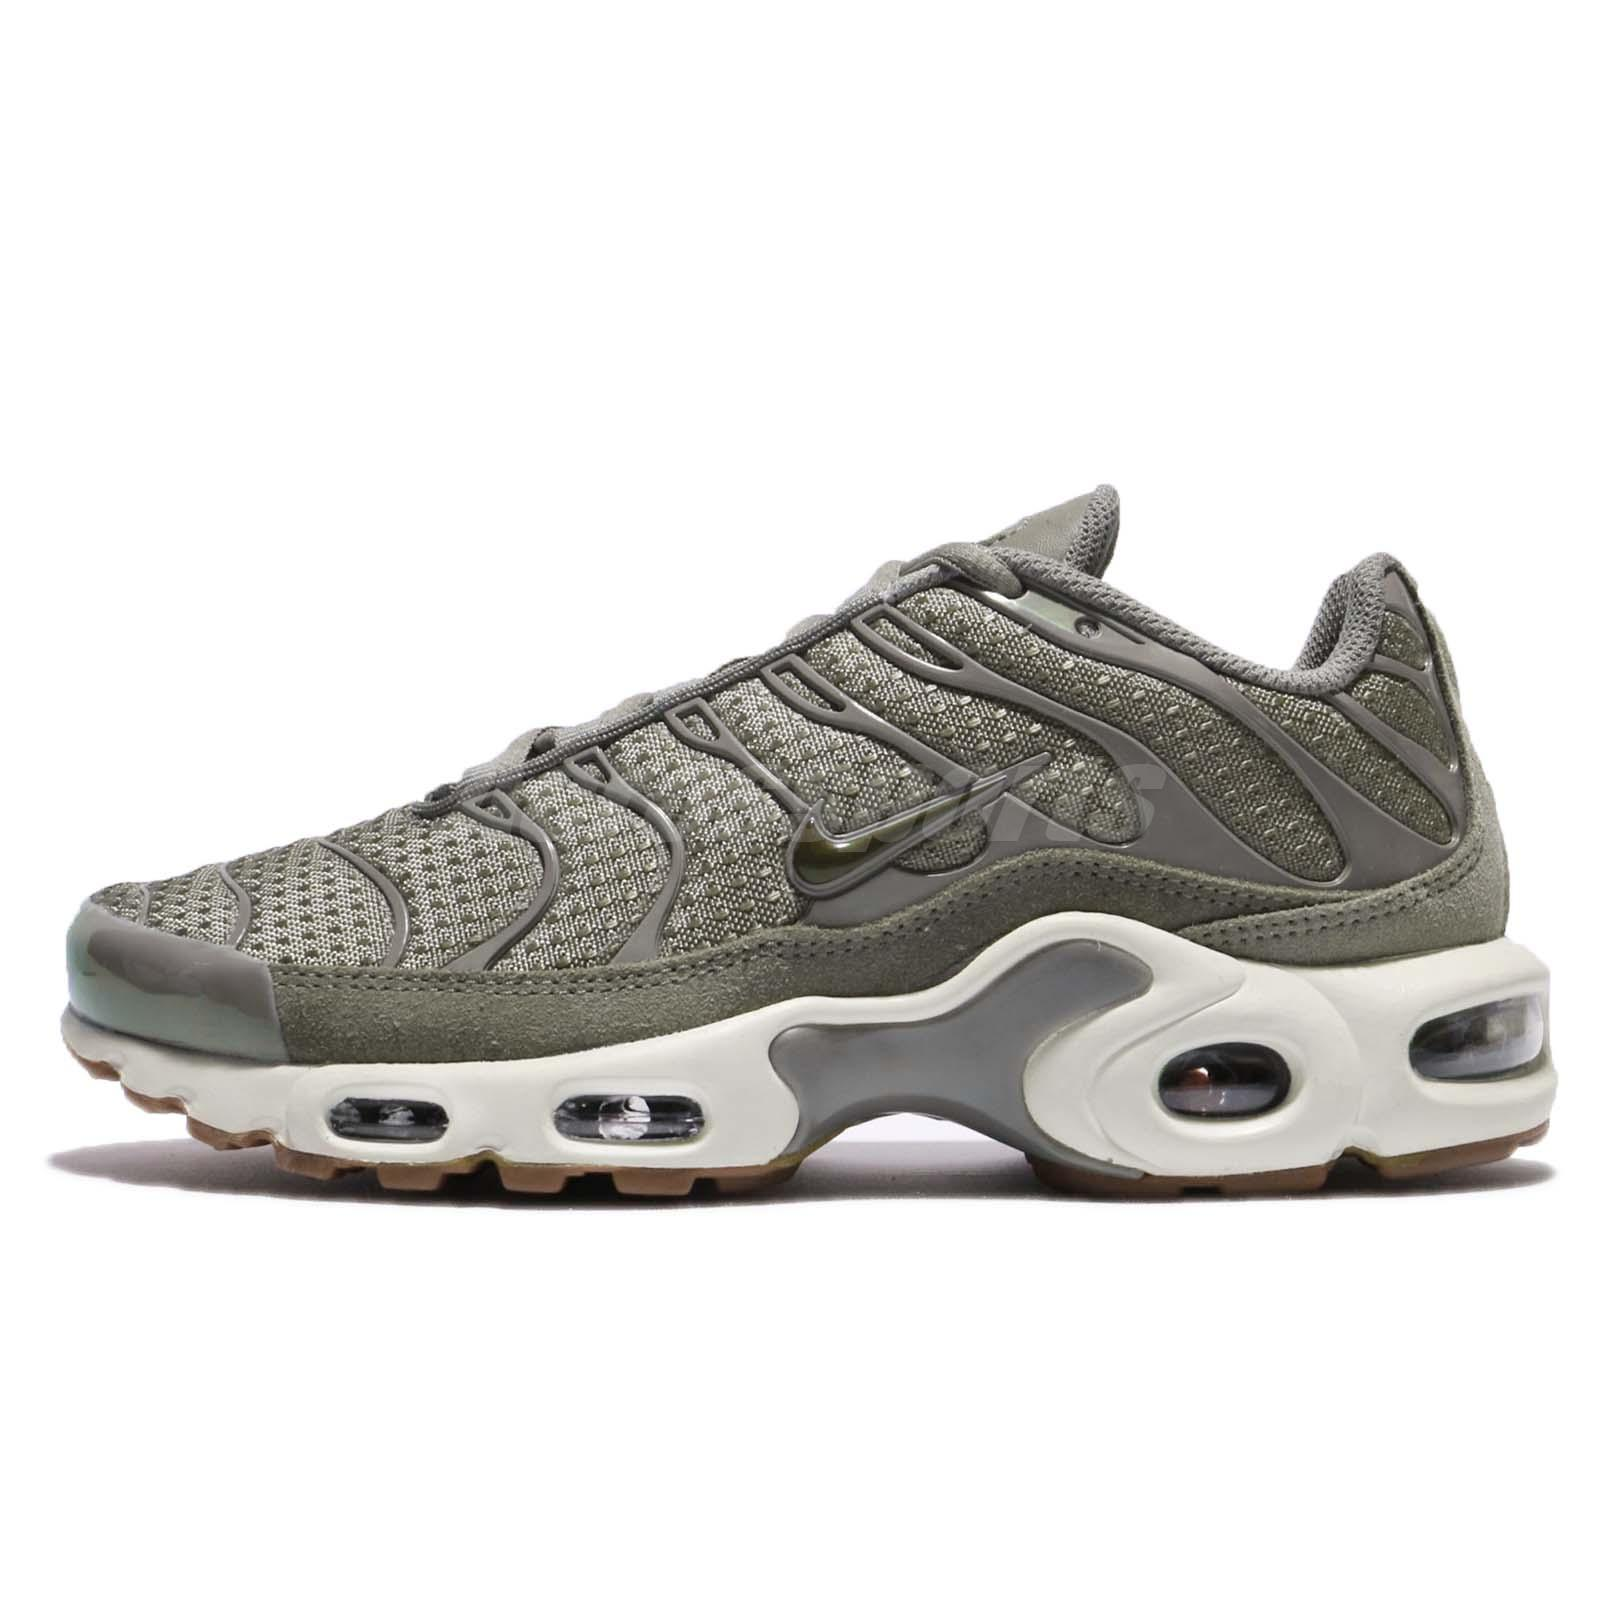 huge selection of bf849 e0dac Nike Wmns Air Max Plus Dark Stucco Vintage Green Sail Women Running  605112-053